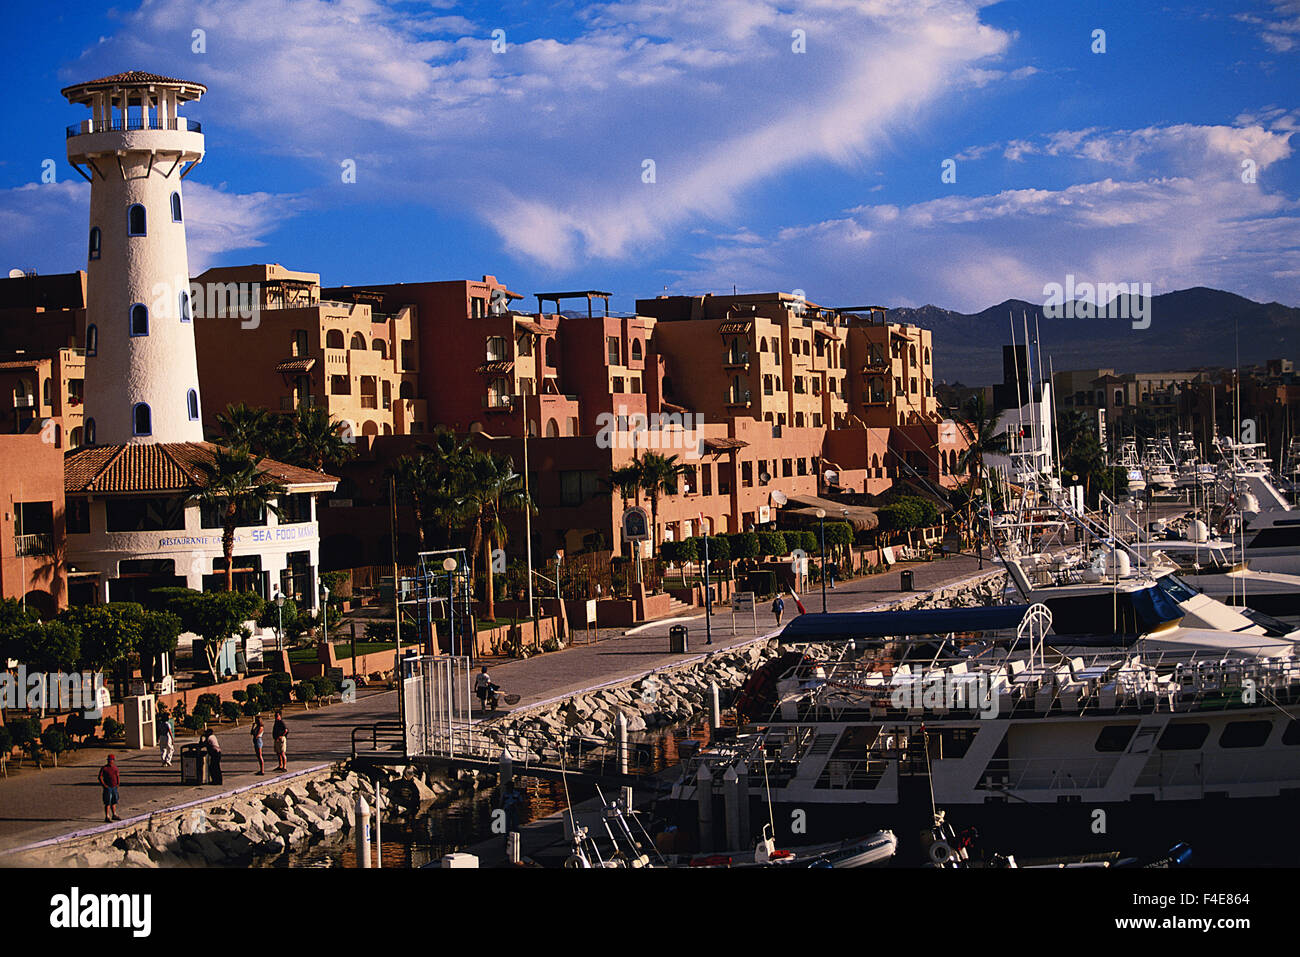 Mexico, Baja California Sur, Cabo San Lucas, Morning view of town and harbor. (Large format sizes available) - Stock Image